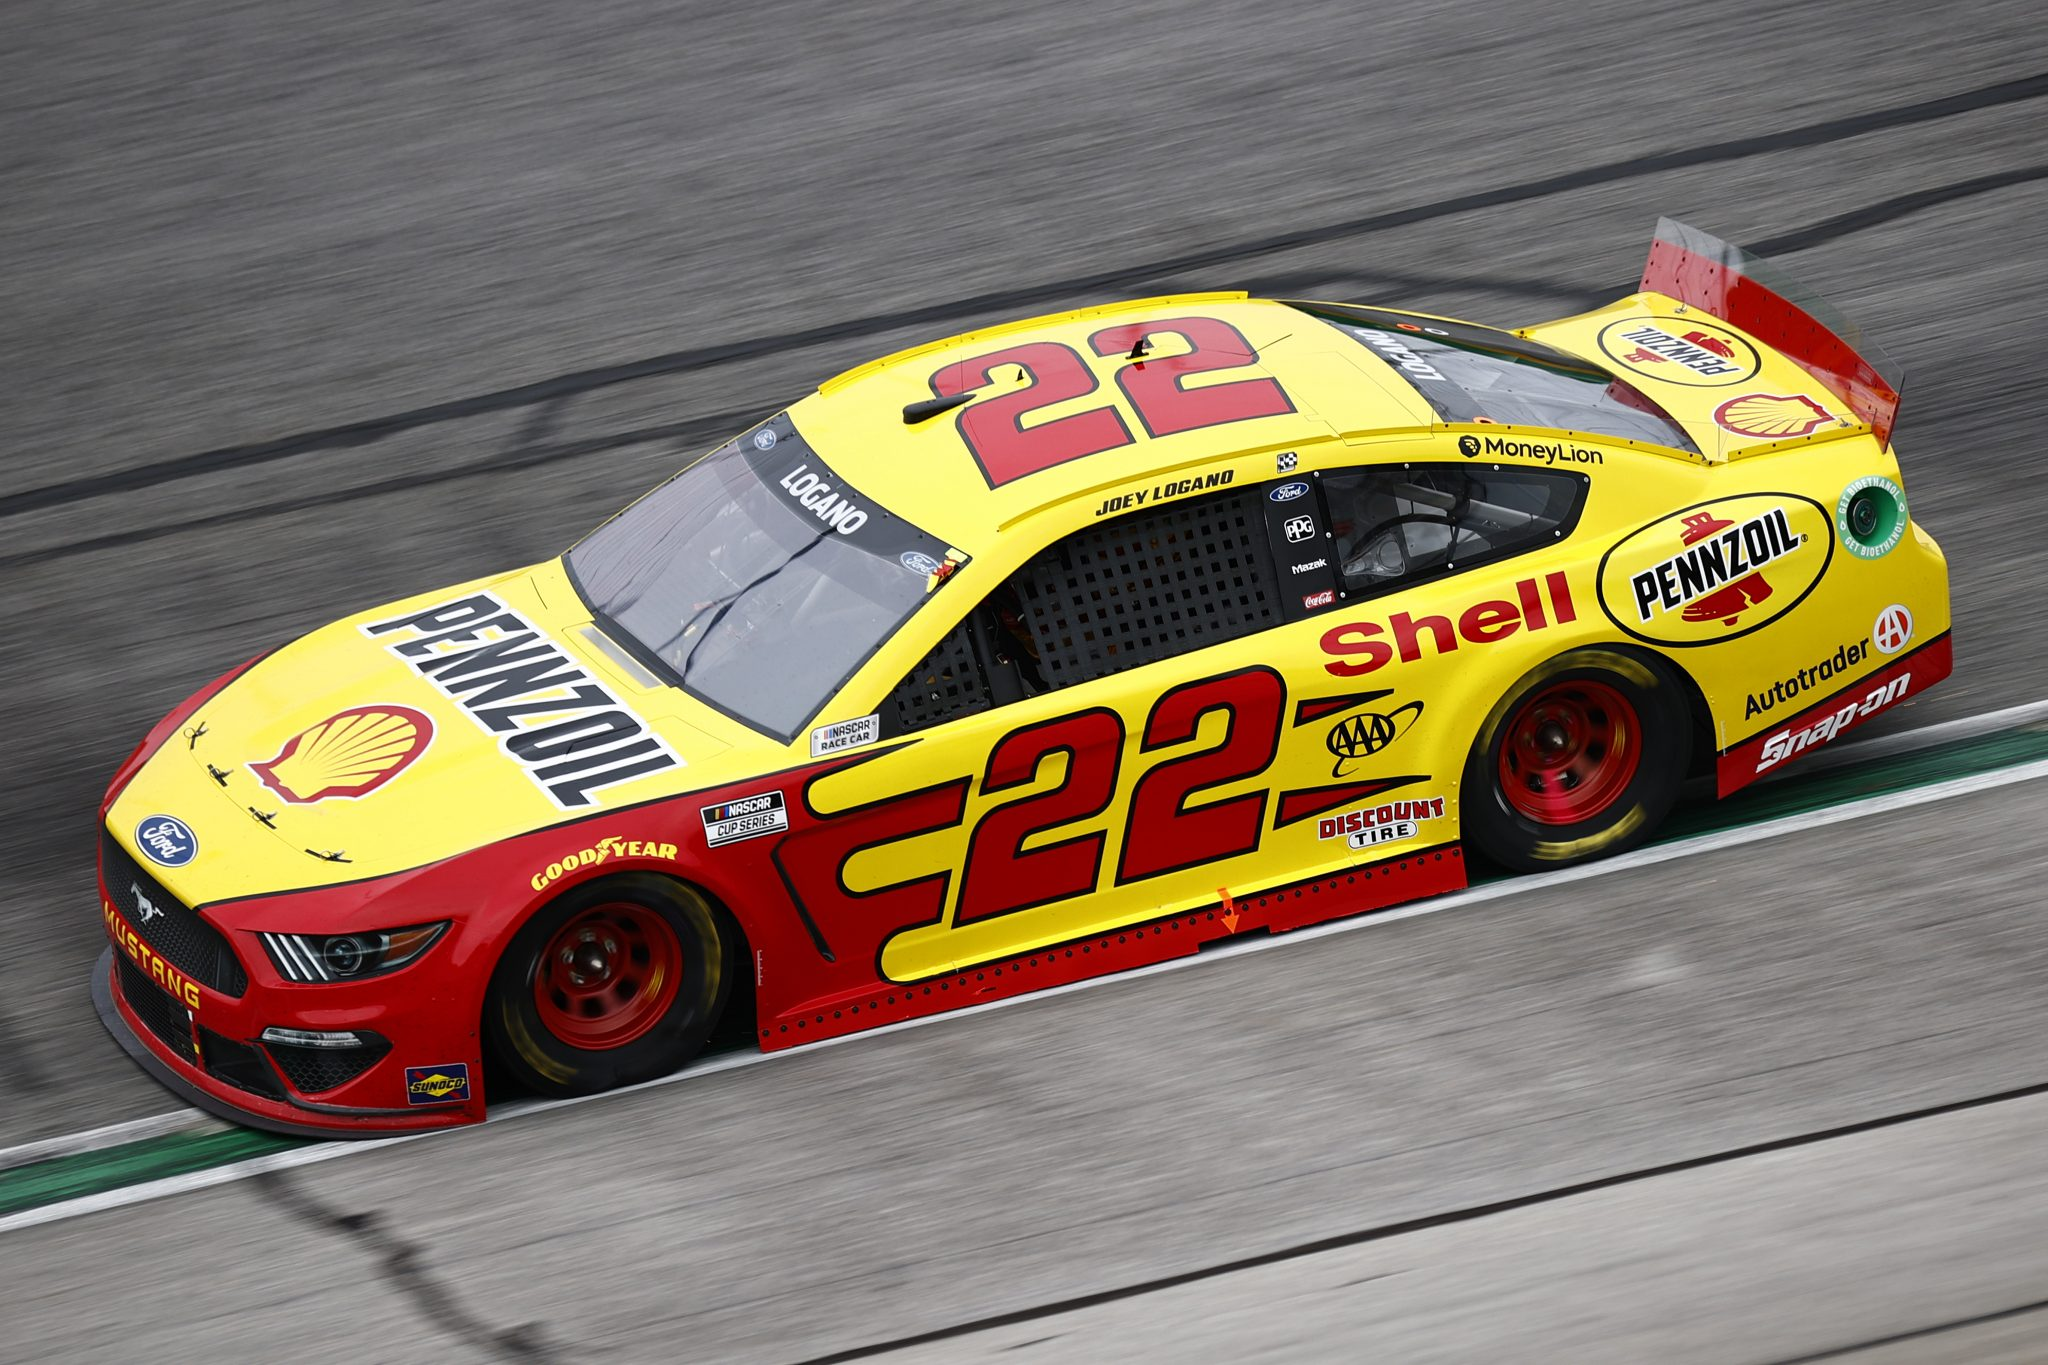 HAMPTON, GEORGIA - JULY 11: Joey Logano, driver of the #22 Shell Pennzoil Ford, drives during the NASCAR Cup Series Quaker State 400 presented by Walmart at Atlanta Motor Speedway on July 11, 2021 in Hampton, Georgia. (Photo by Jared C. Tilton/Getty Images) | Getty Images